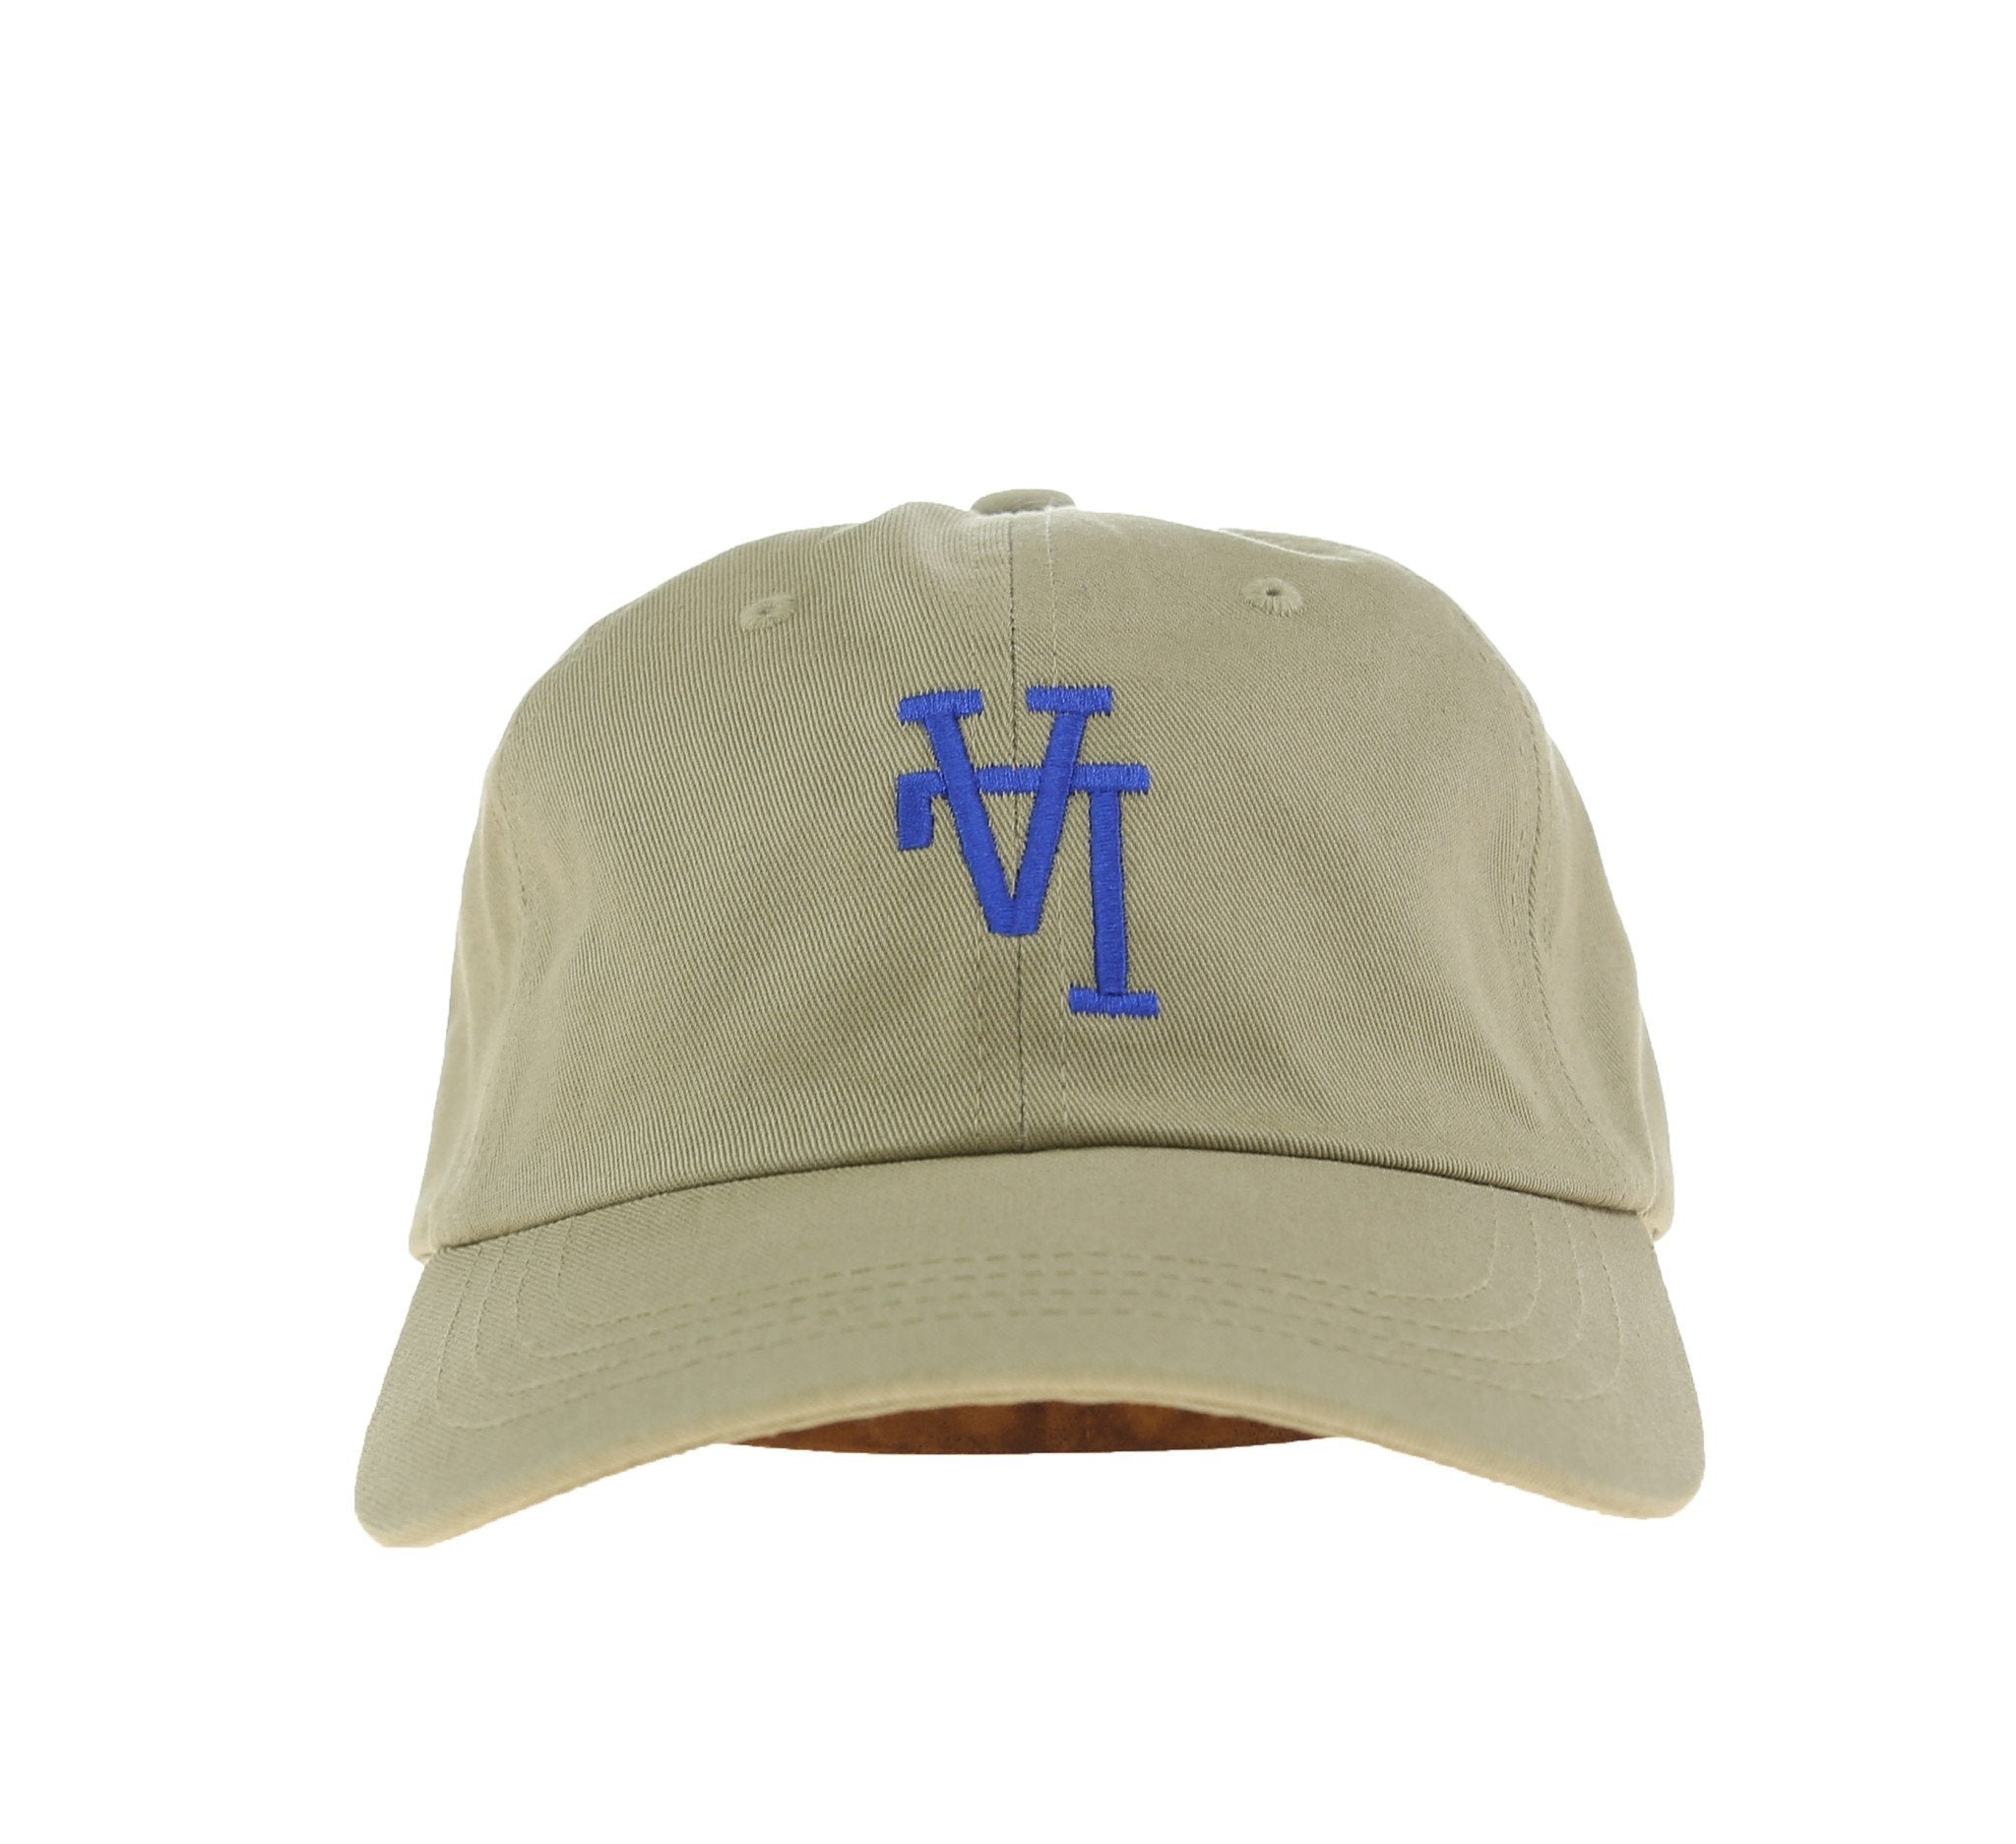 b3e9bbbd coupon for upside down la dodgers hat on the hunt 5a859 223b6; amazon la  flip dad hat khaki d5153 e03f4